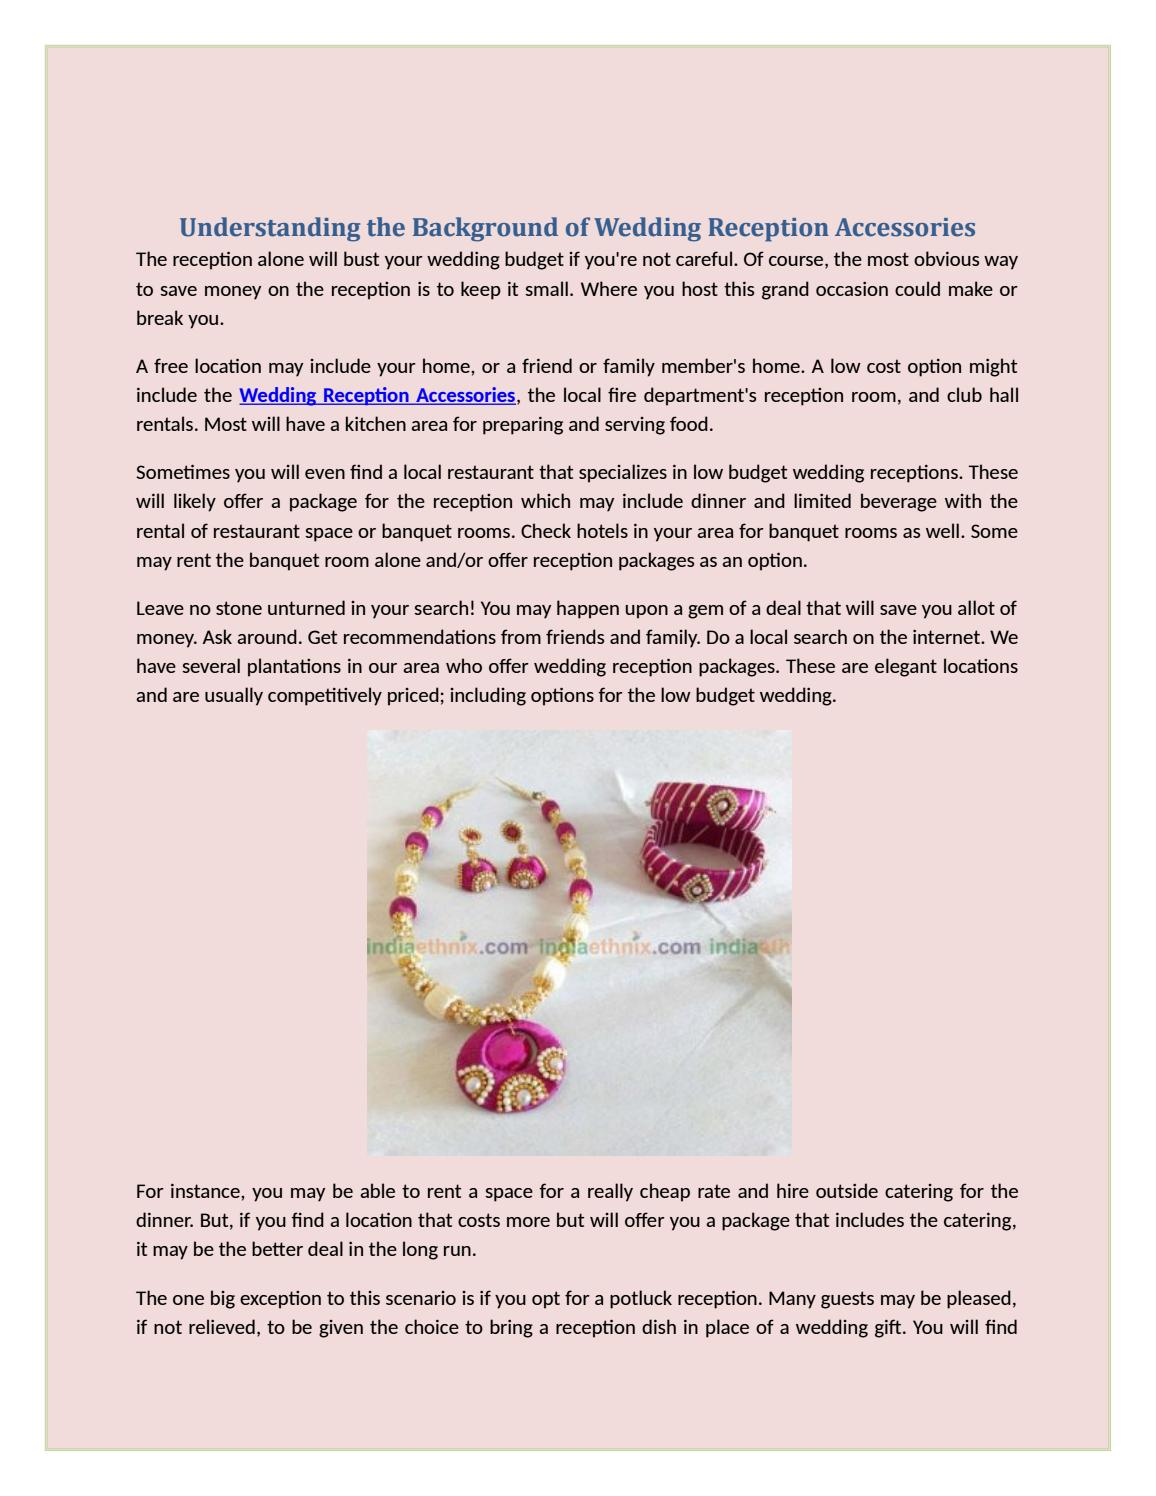 Understanding The Background Of Wedding Reception Accessories By